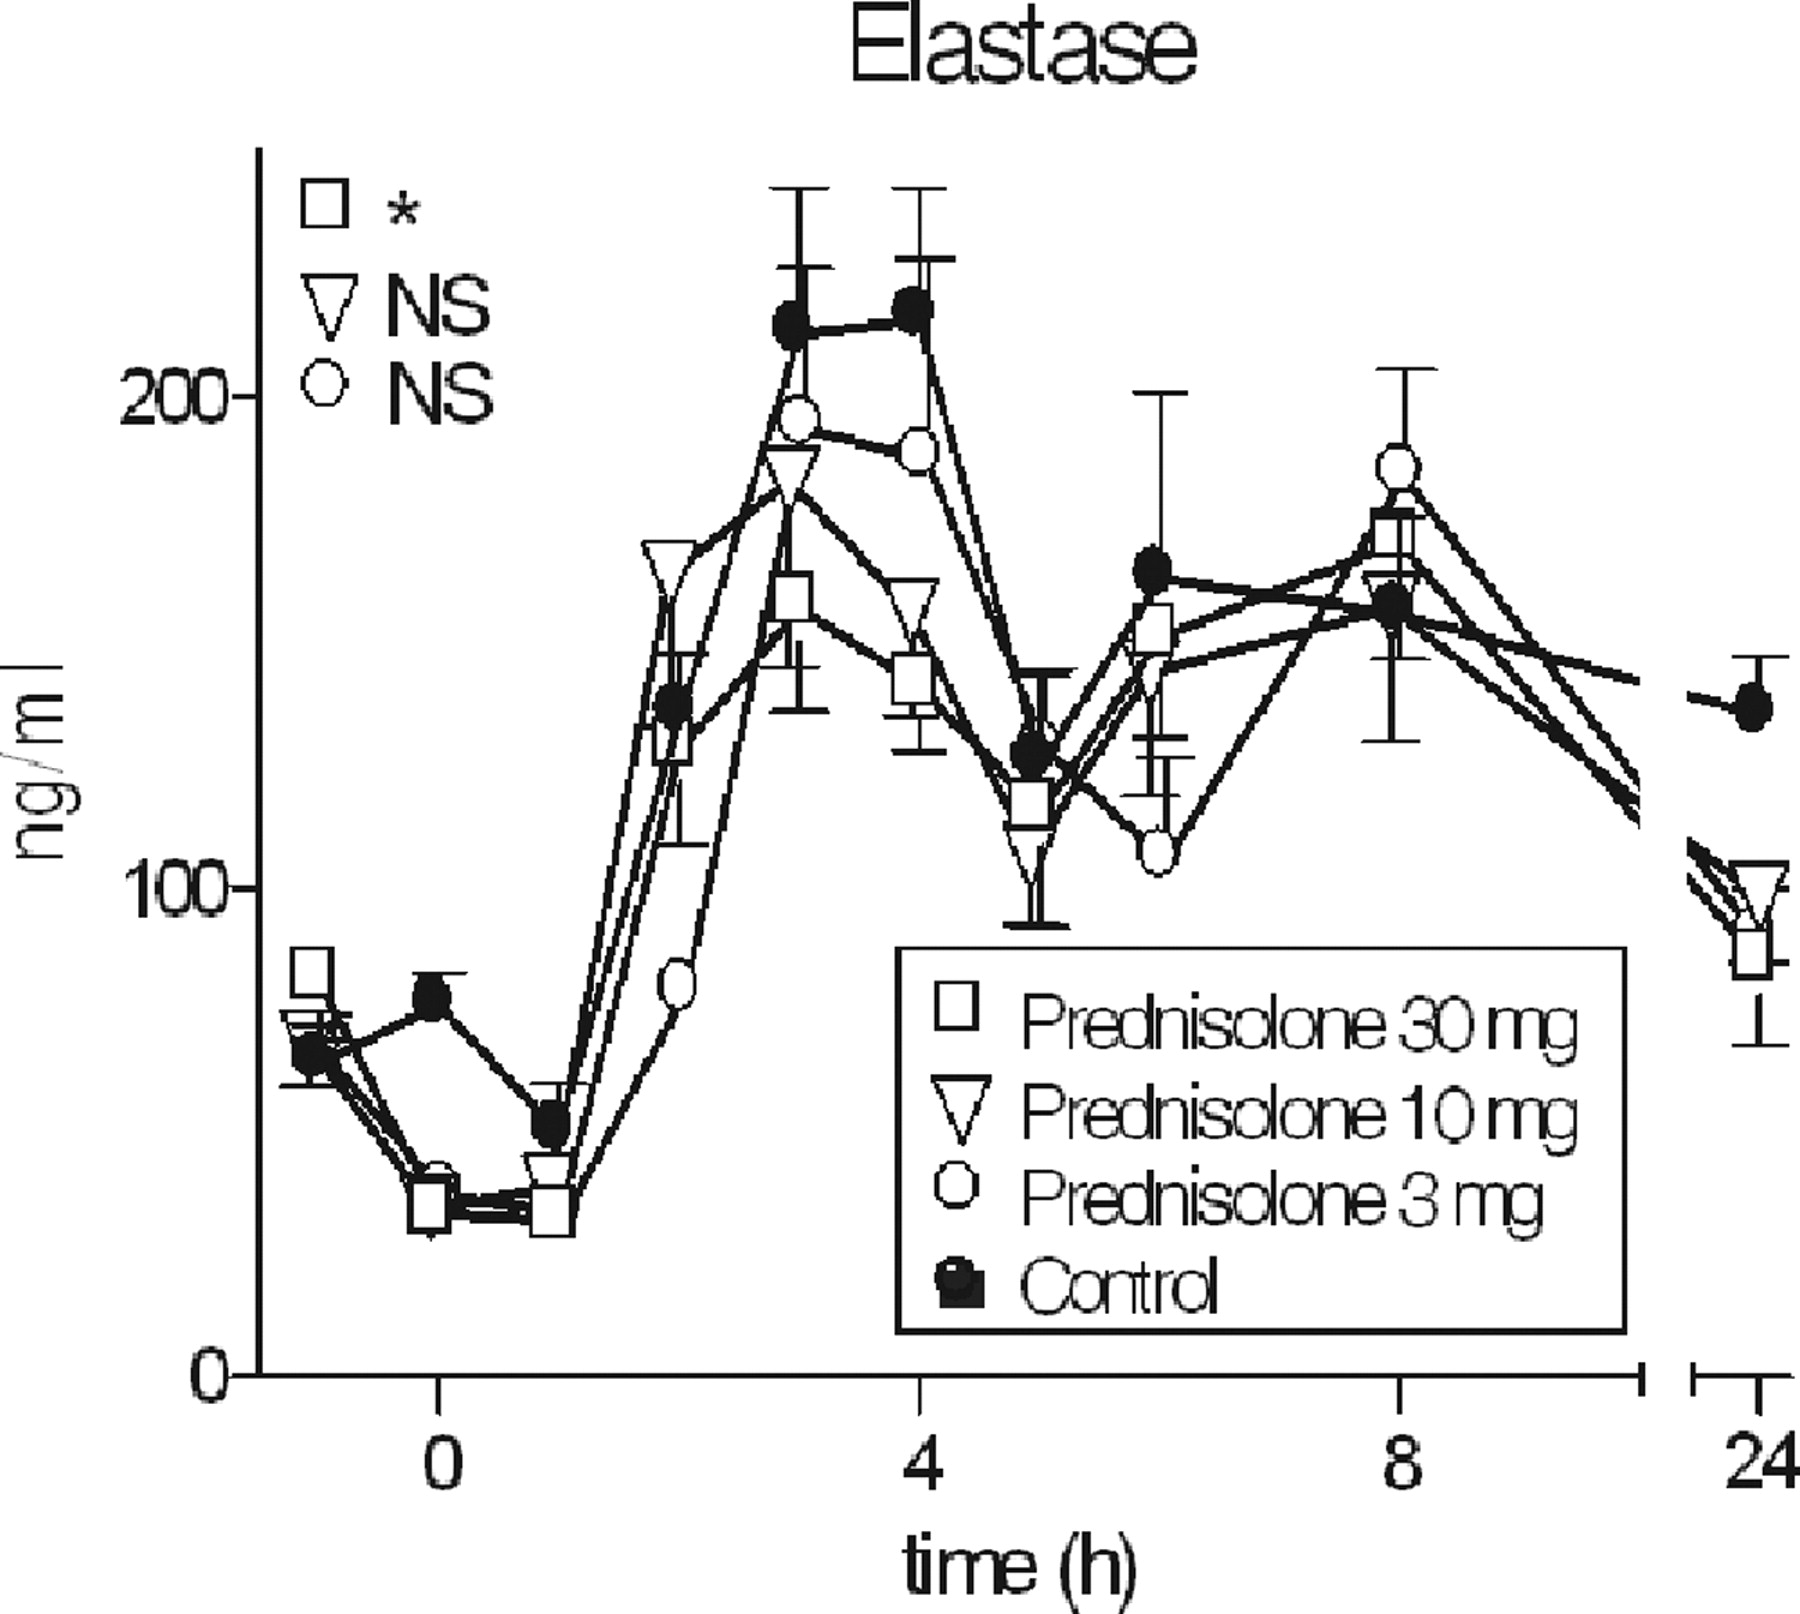 Prednisolone Dose-Dependently Influences Inflammation and